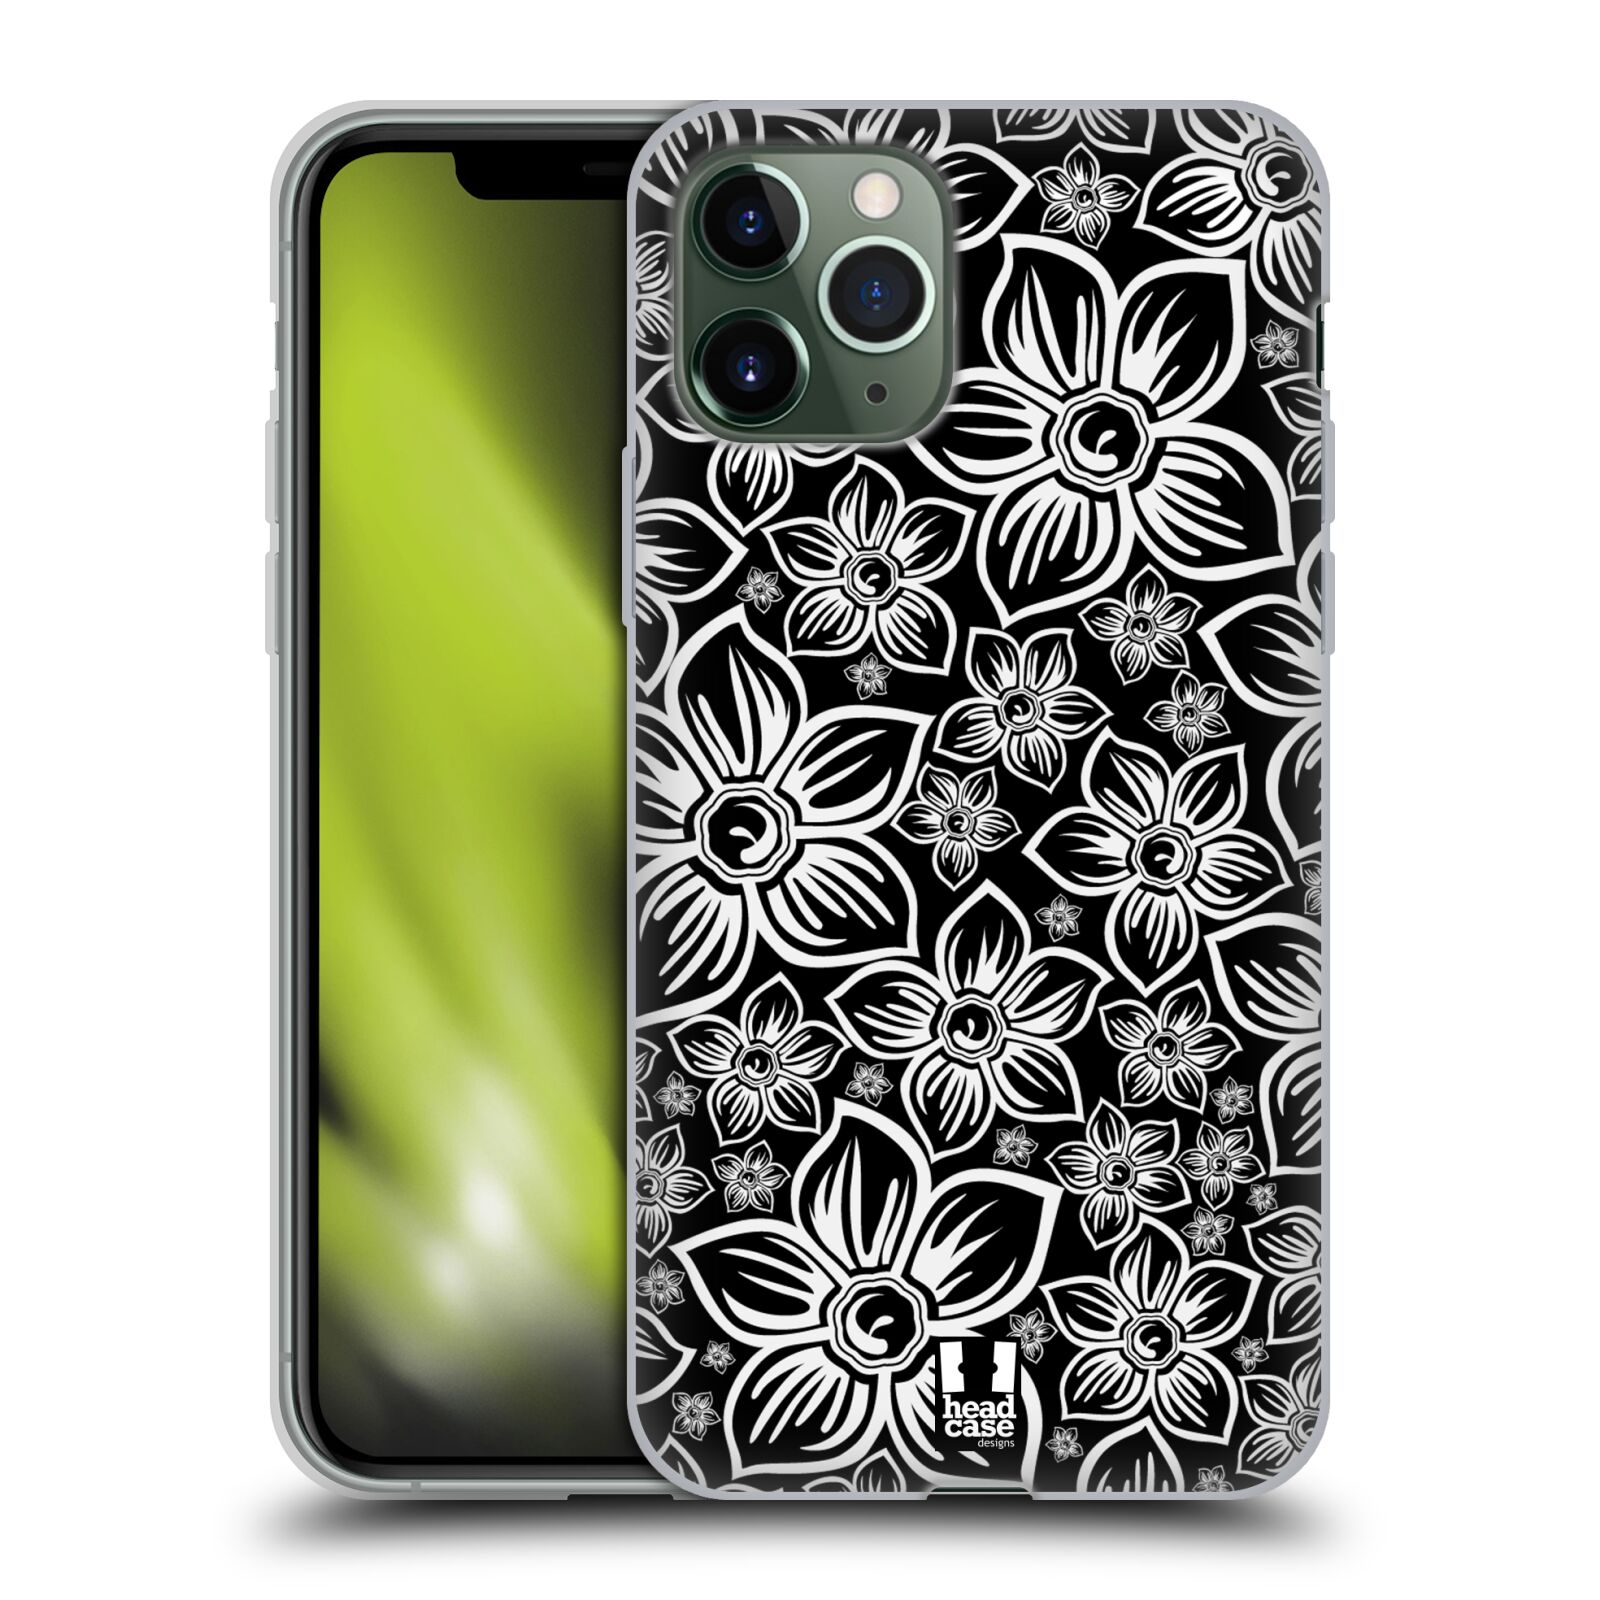 apple king | Silikonové pouzdro na mobil Apple iPhone 11 Pro - Head Case - FLORAL DAISY